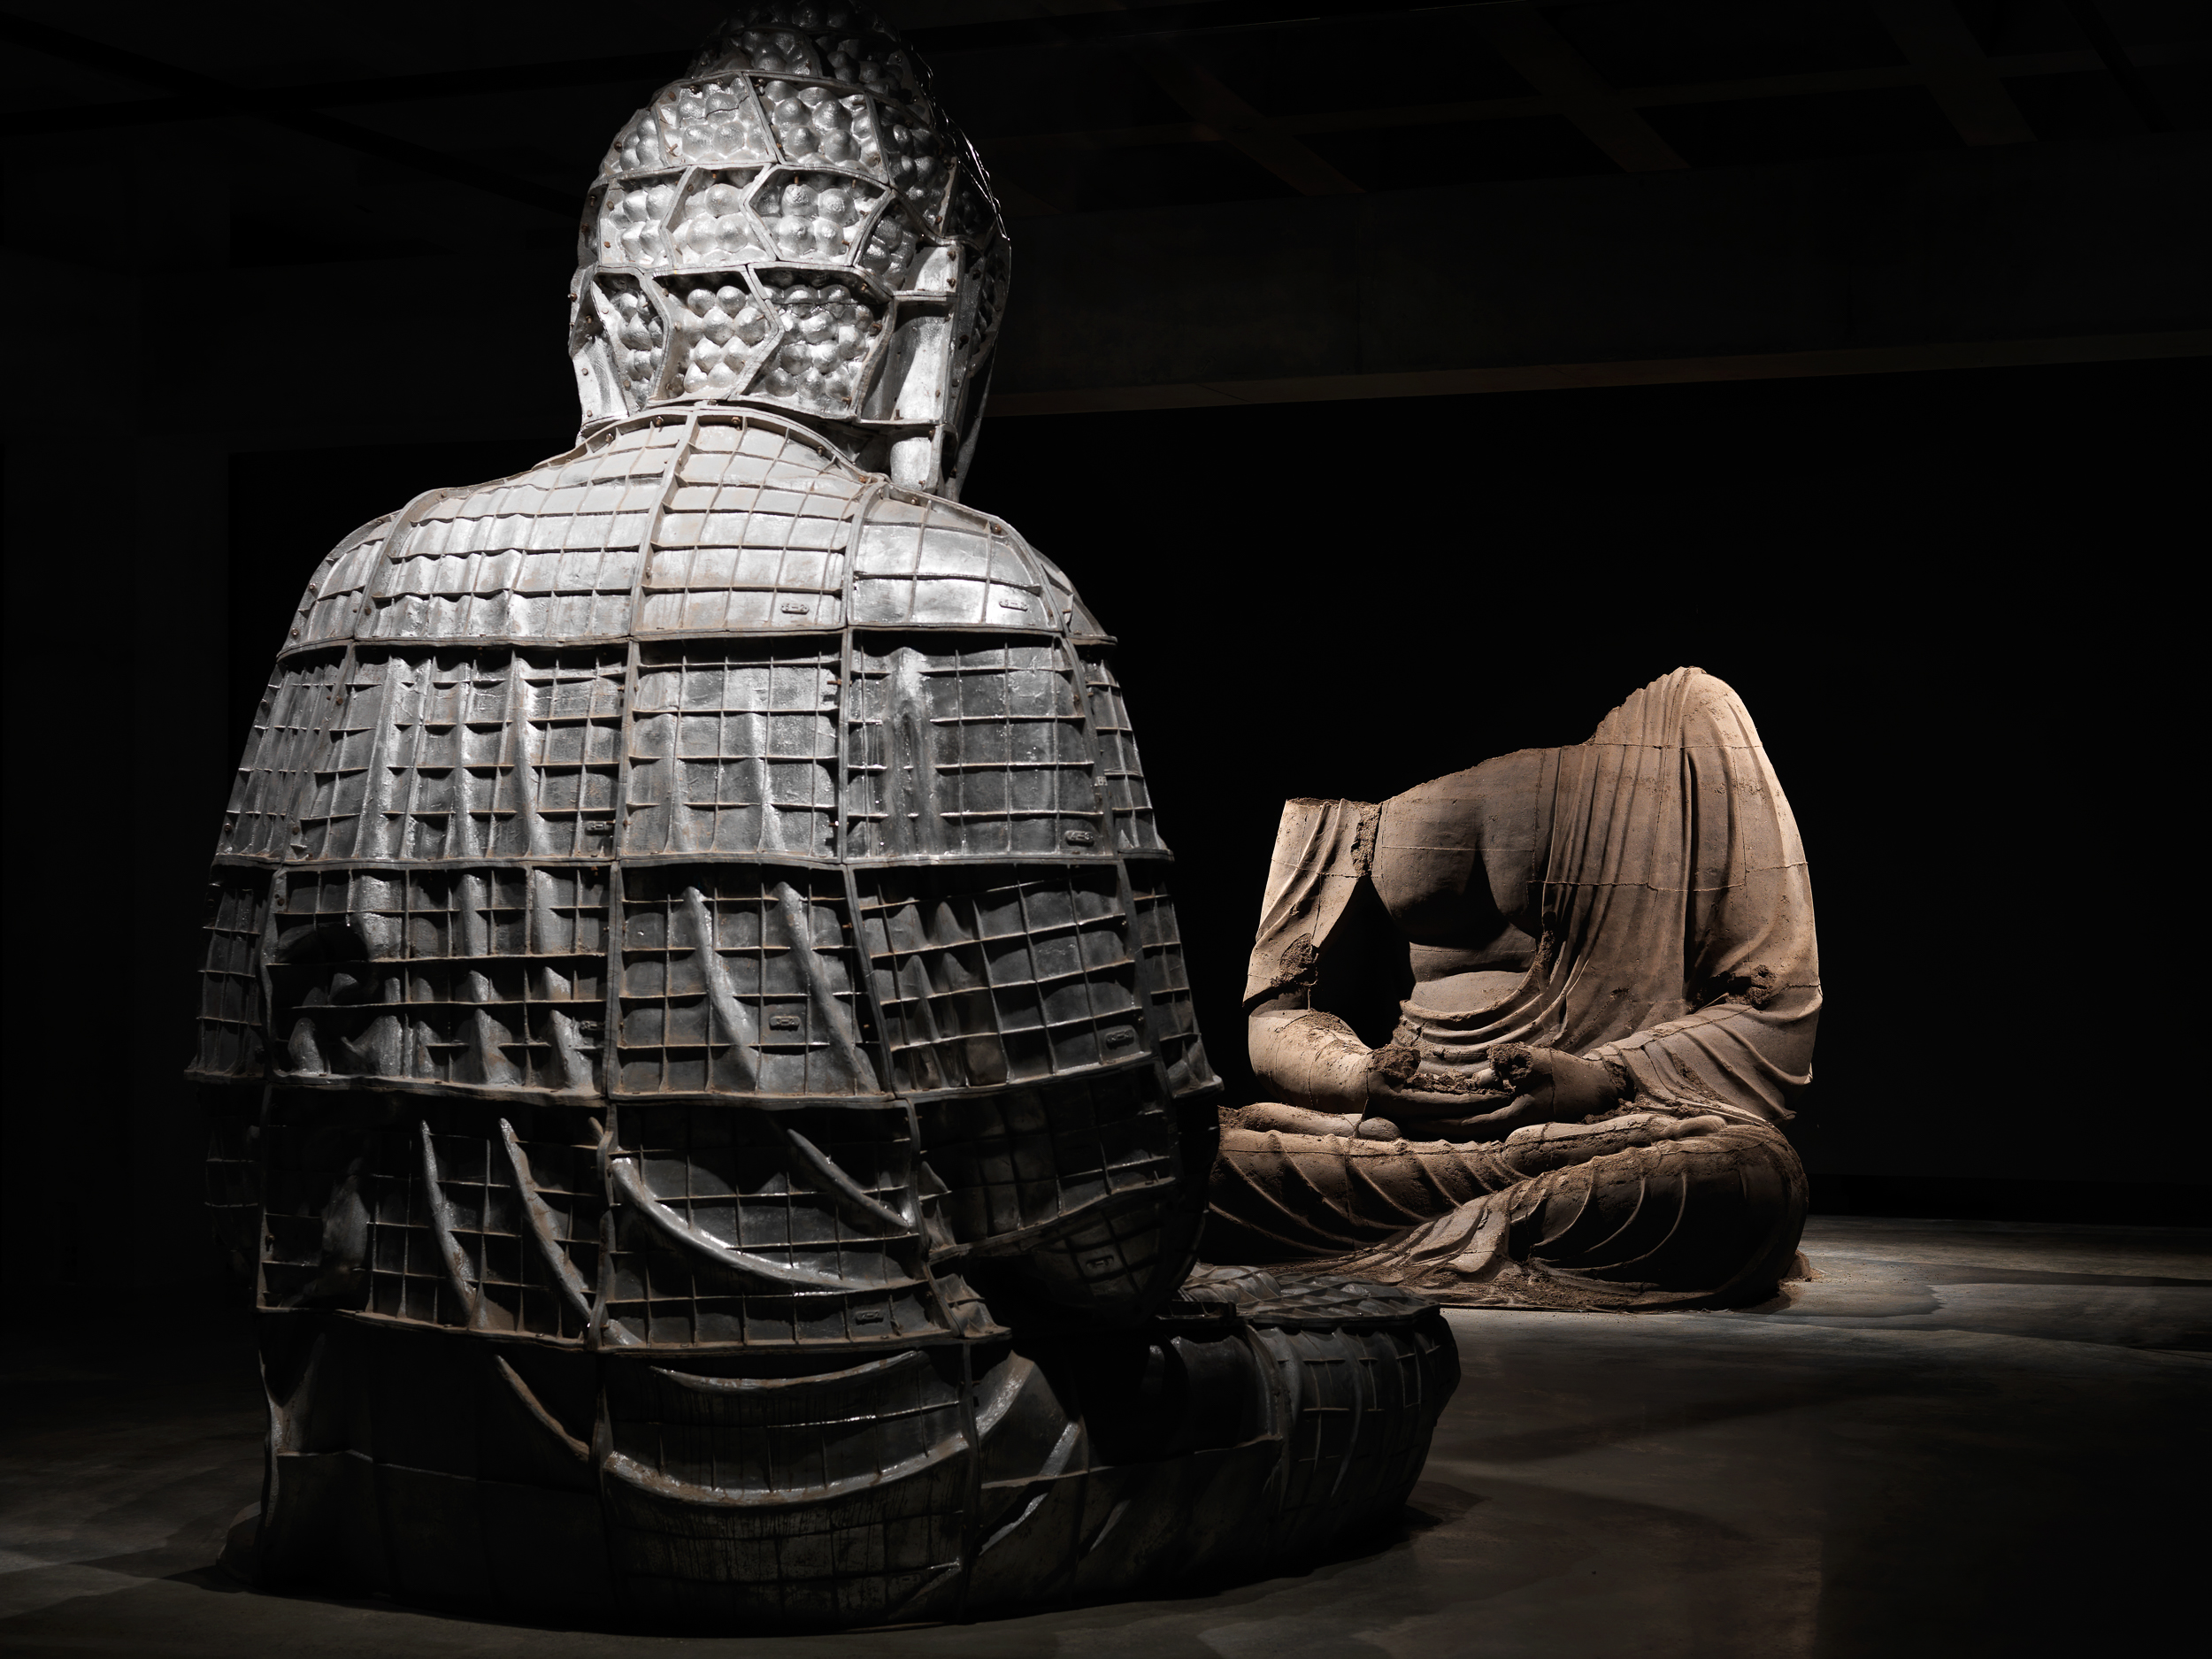 Berlin Buddha 2007  Zhang Huan (Born 1965, Anyang, Henan Province, China; lives and works in Shanghai, China and New York, NY, USA) Aluminium and ashes Each 370 x 260 x 290 cm  Private collection, Geneva, courtesy of Letizia Cramer